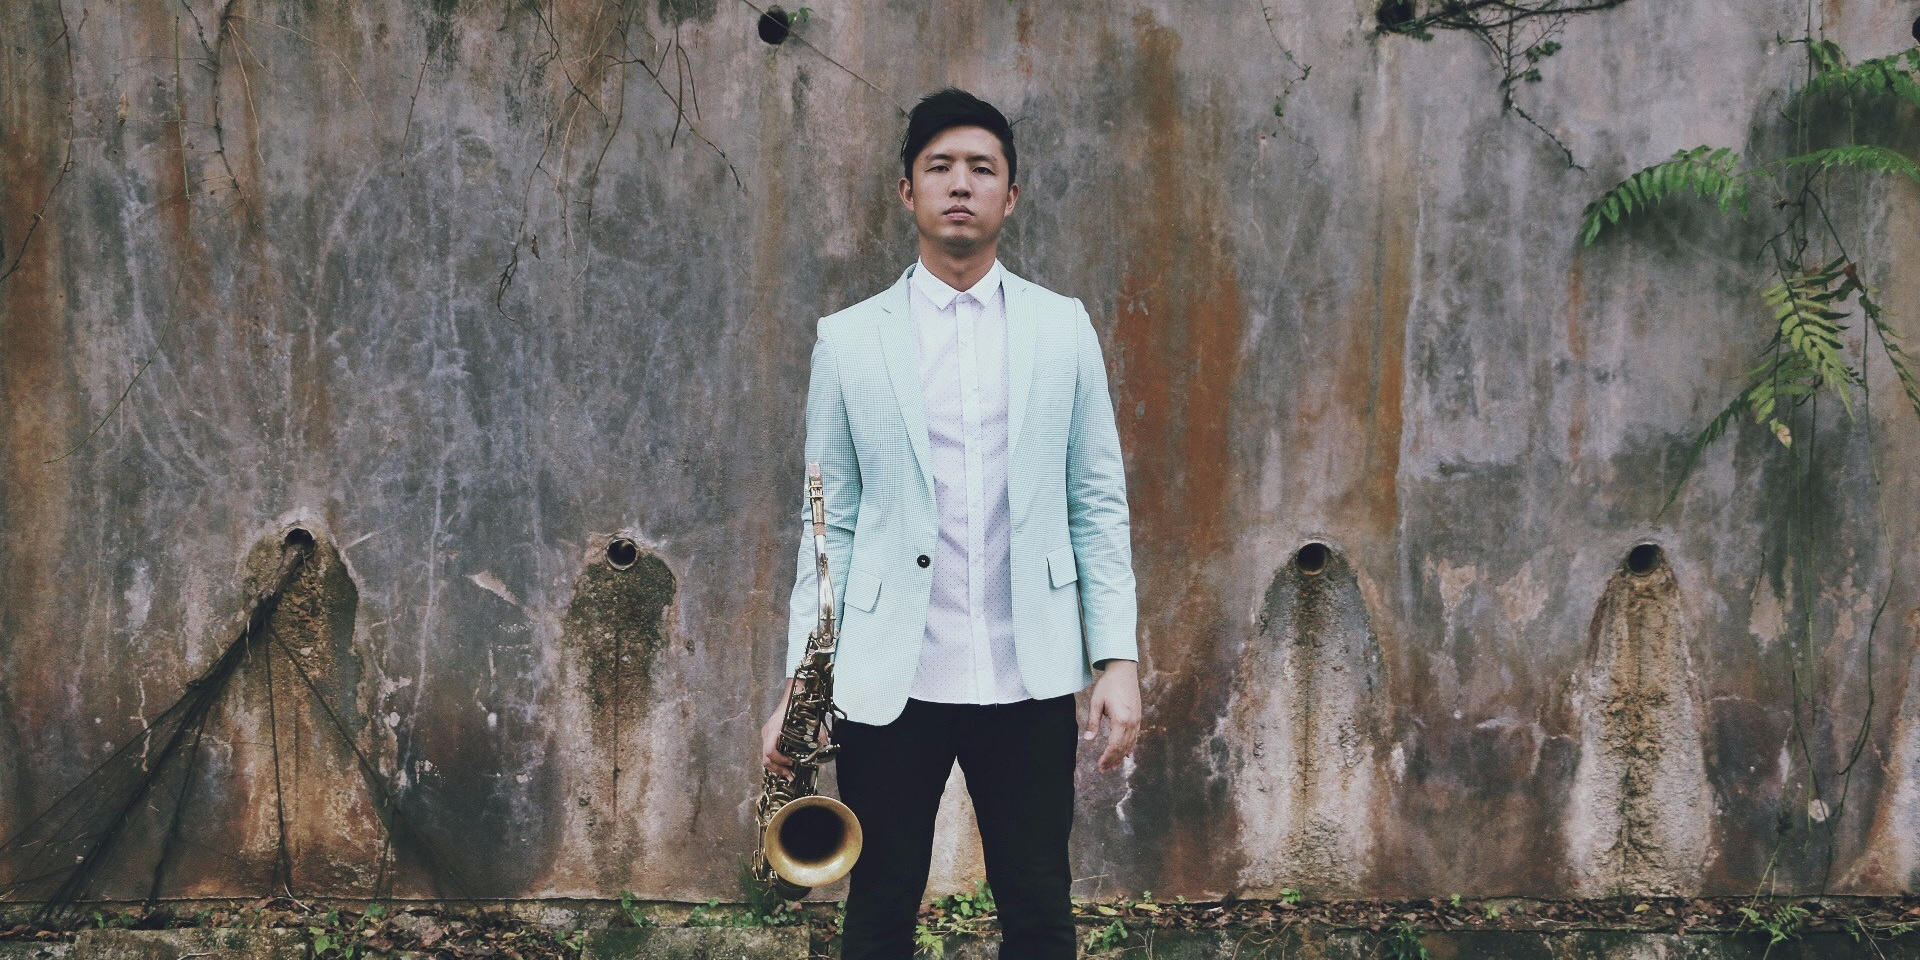 Singaporean jazz saxophonist Daniel Chia garners enormous support on Kickstarter for debut album